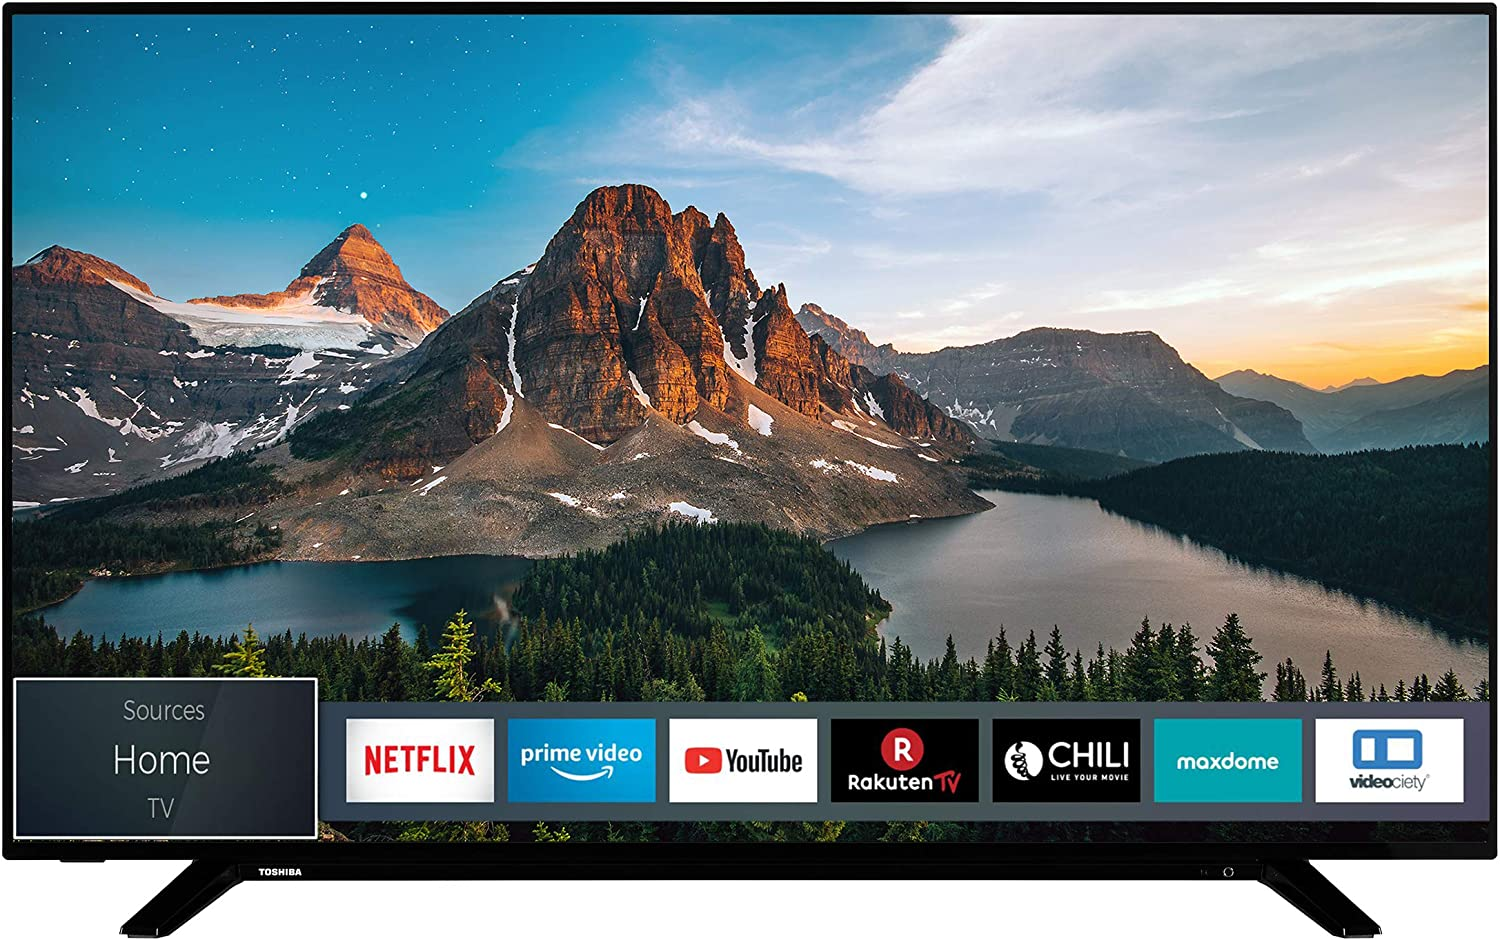 Tv toshiba 55pulgadas led 4k uhd - 55u2963dg - smart tv - wifi - hdr10 - hd dvb - t2 - c - s2 - hdmi - usb - dolby visi